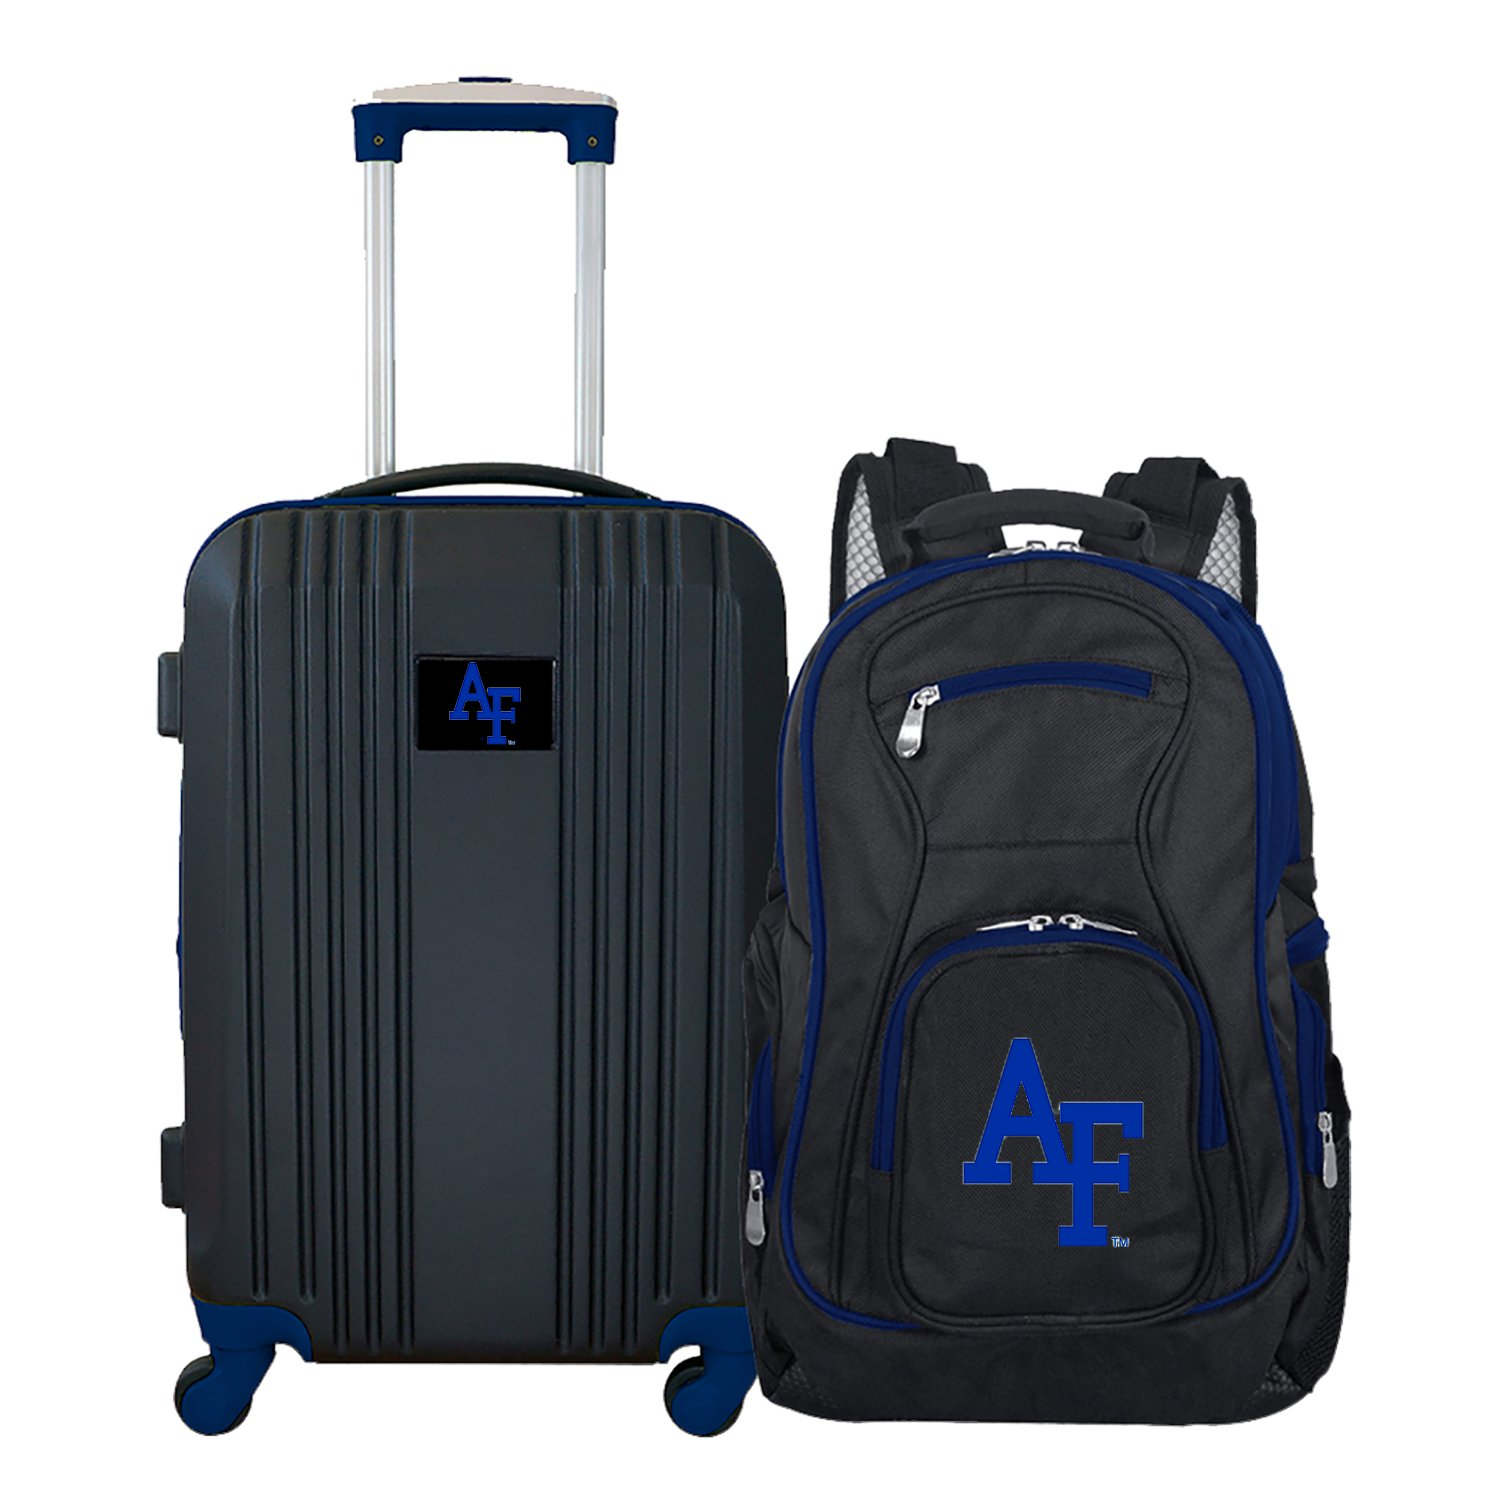 NCAA Air Force Falcons 2-Piece Luggage Set